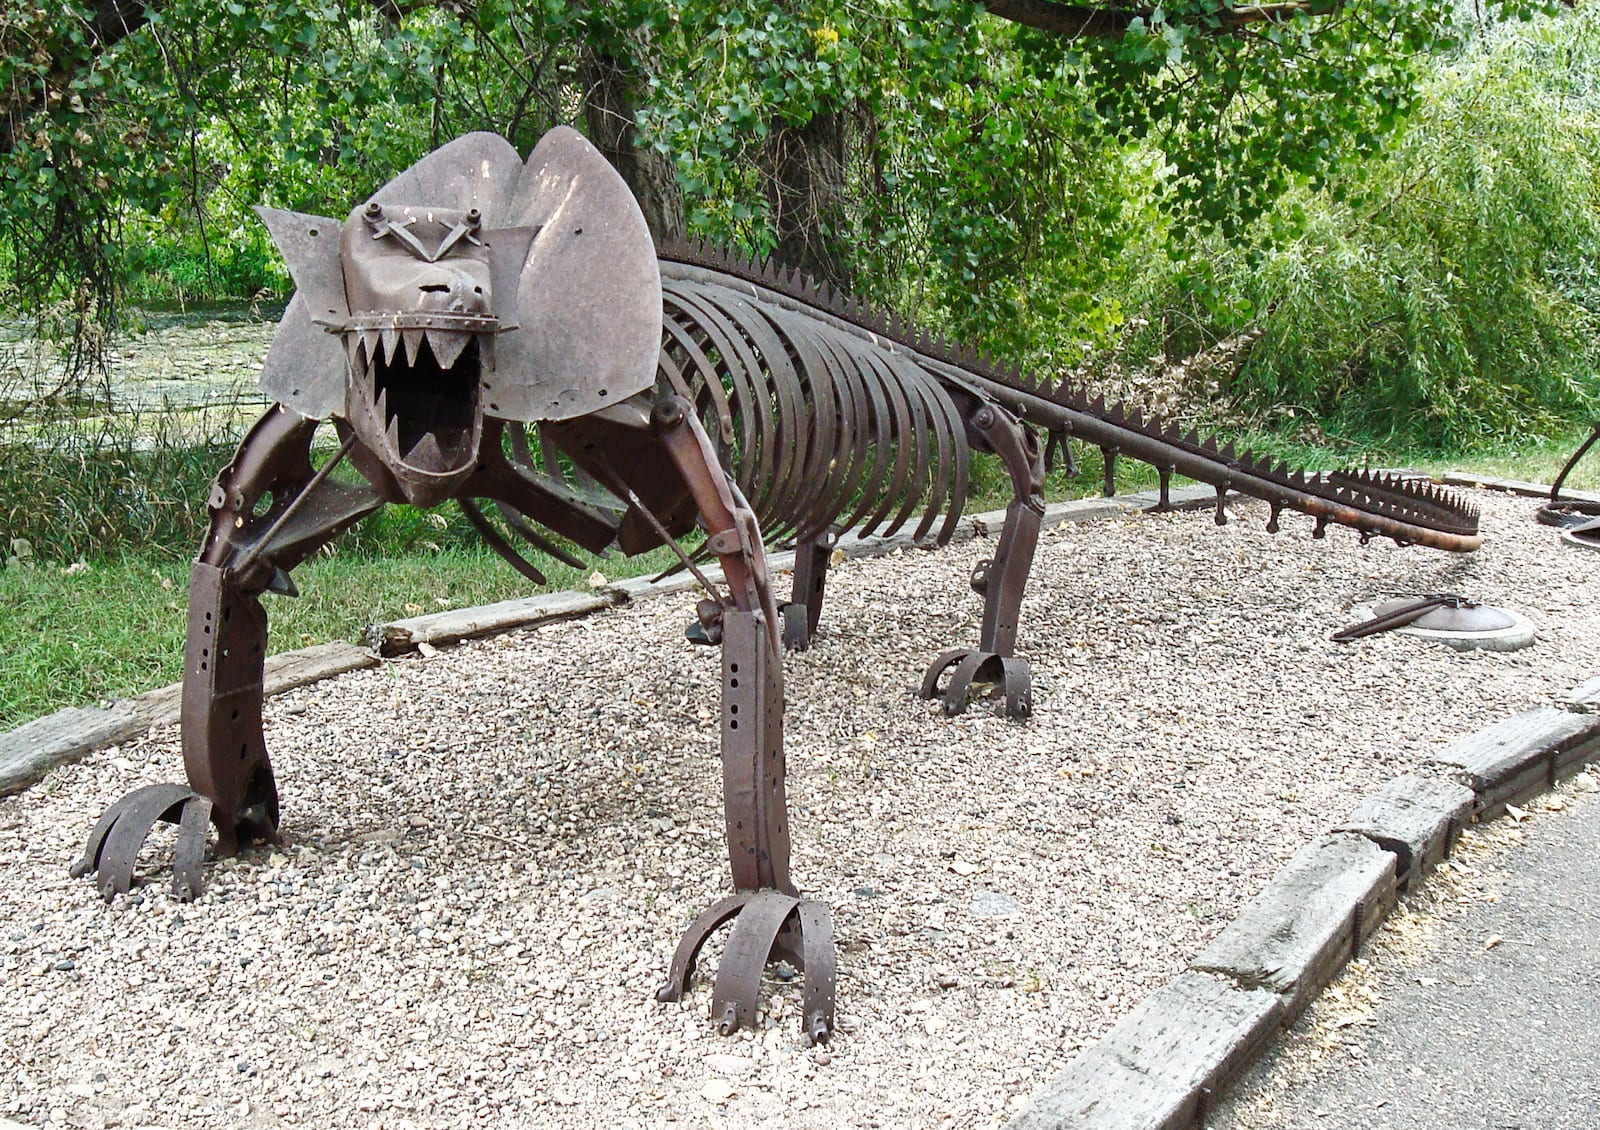 Swetsville Zoo, Fort Collins, Colorado